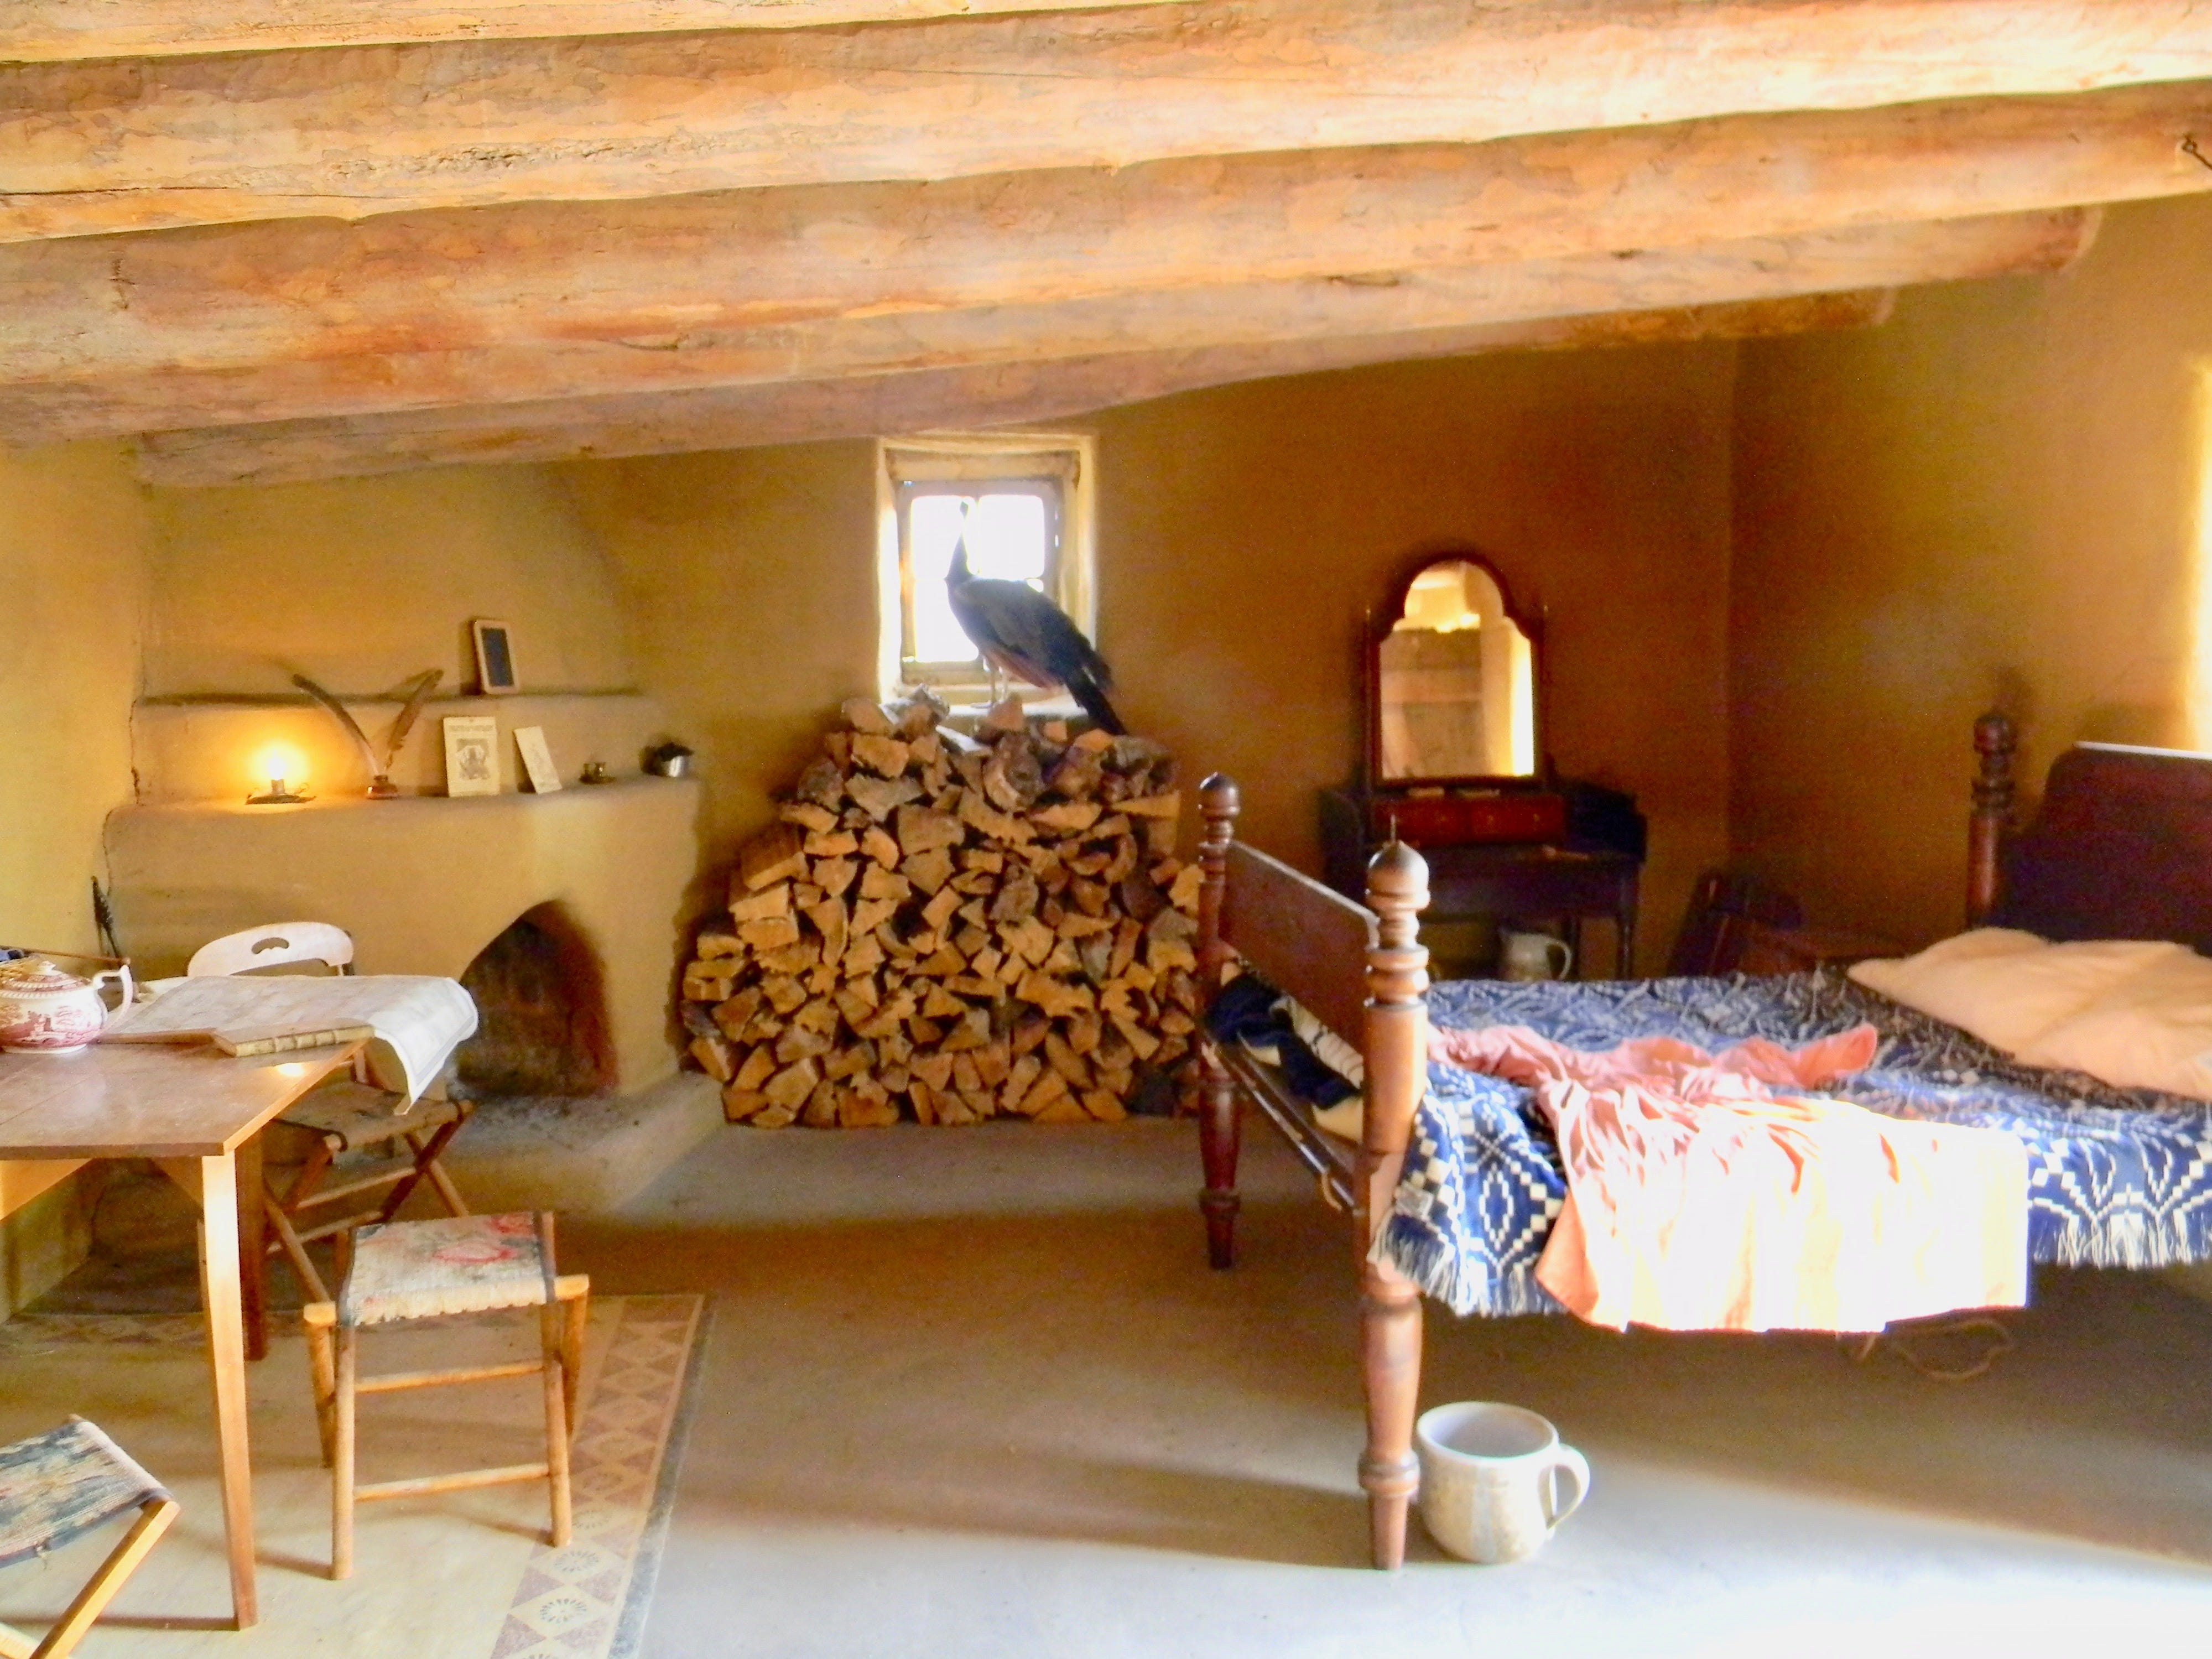 The is Susan Magoffin's room at Bent's Old Fort, where she convalesced after a miscarriage.